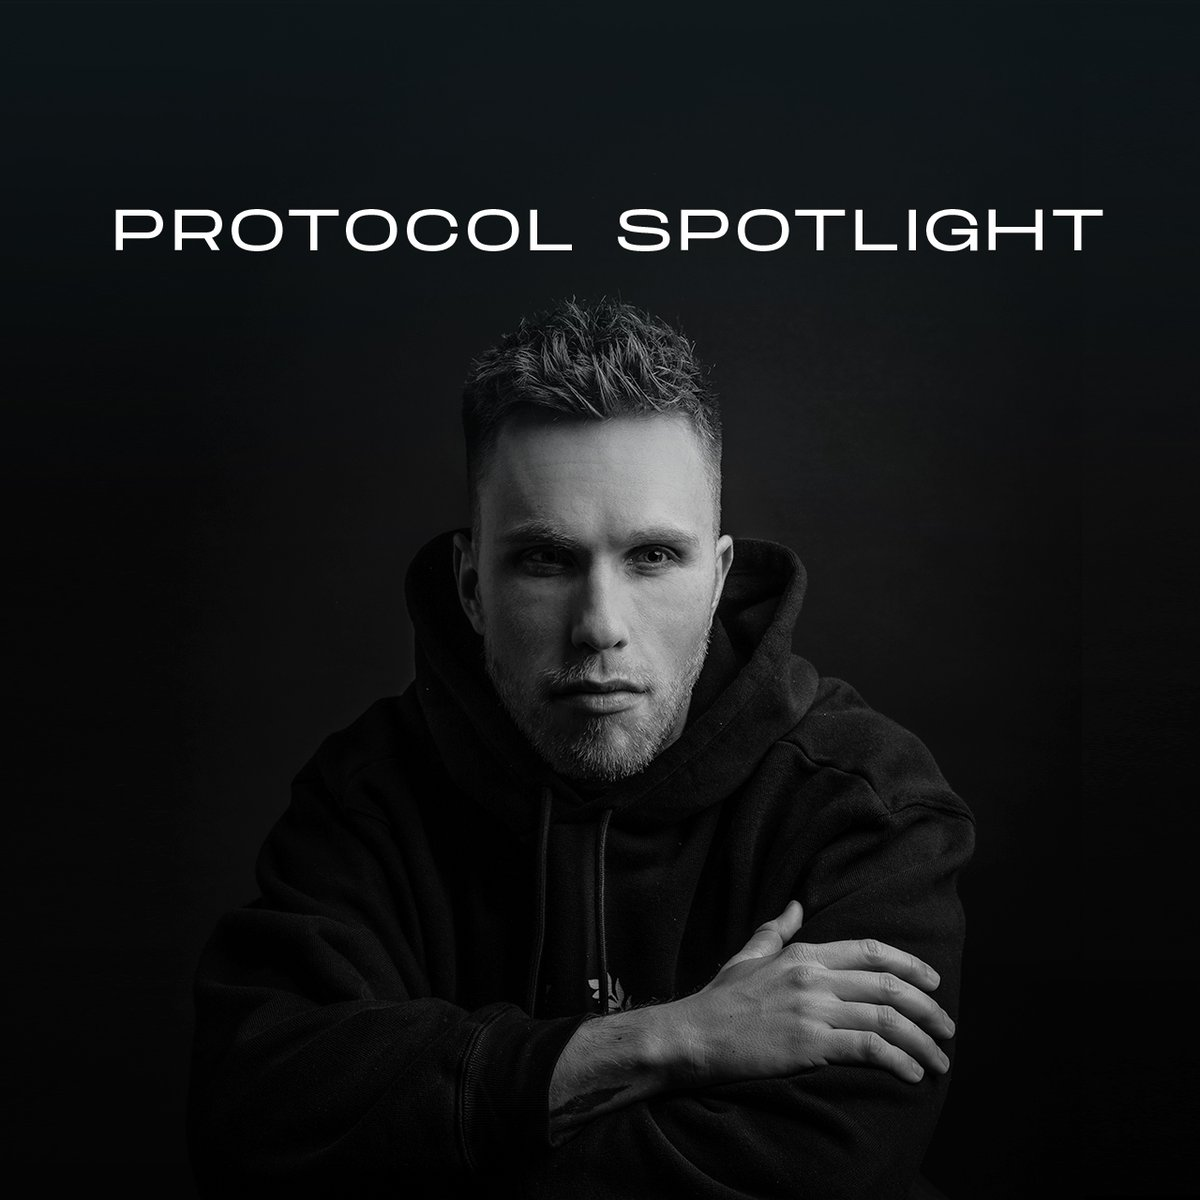 Are you ready for a fresh Protocol Spotlight Playlist? 💡 This week curated by the boss @nickyromero! 👉 Listen now on #Spotify #AppleMusic or #Deezer: https://t.co/4v1YkZm1wR https://t.co/DUis5sUF4u